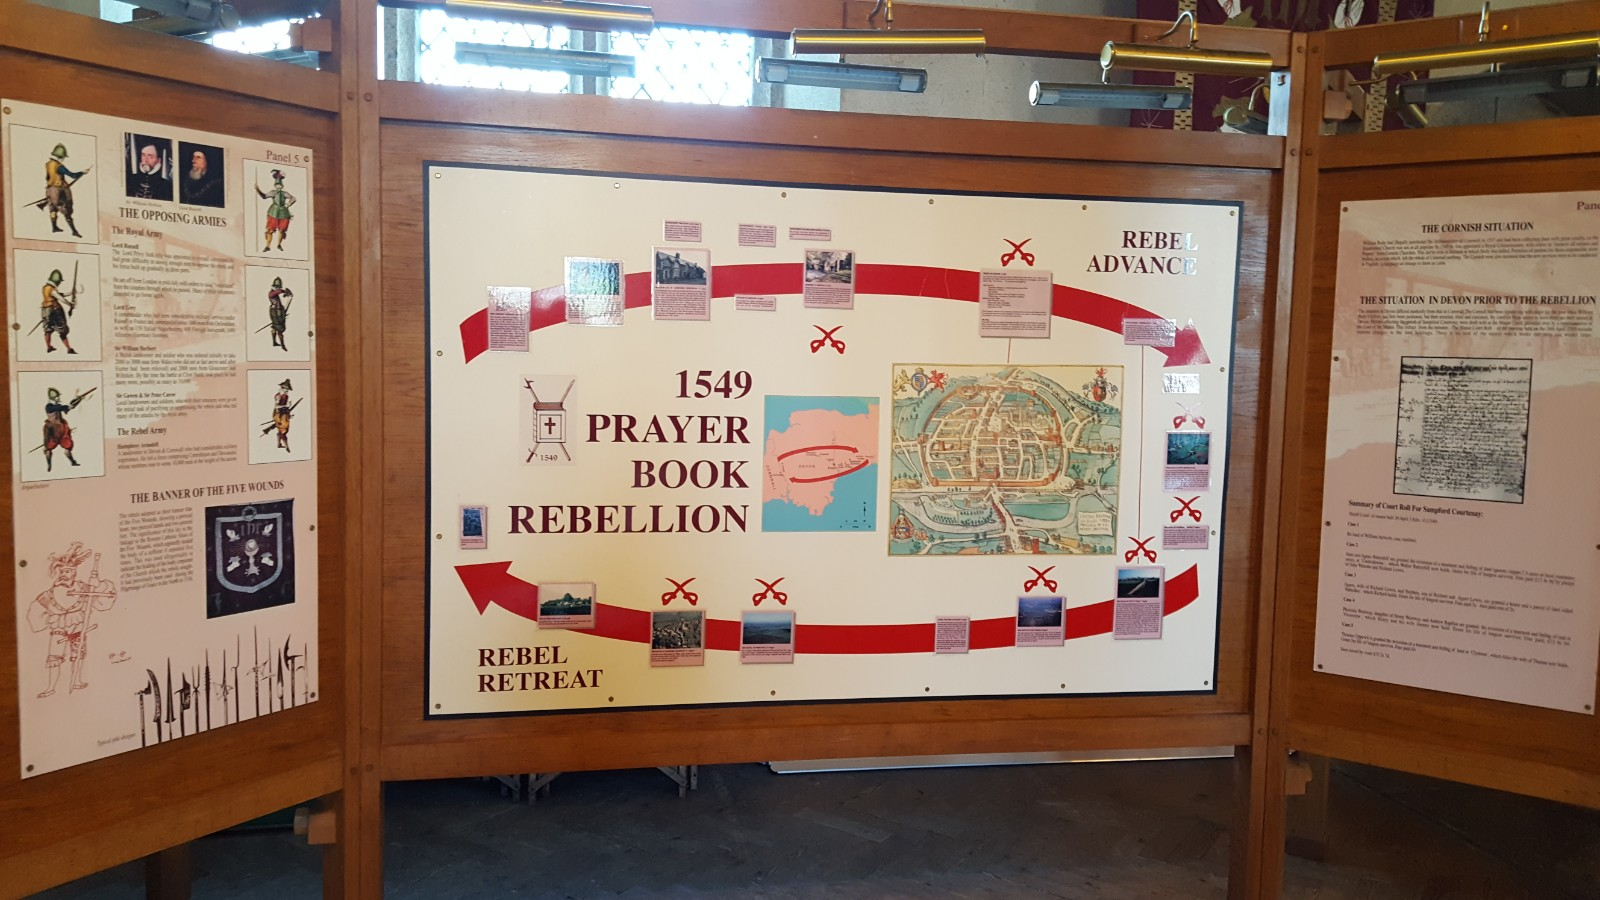 Prayer Book Rebellion display, Sampford Courtenay, Devon